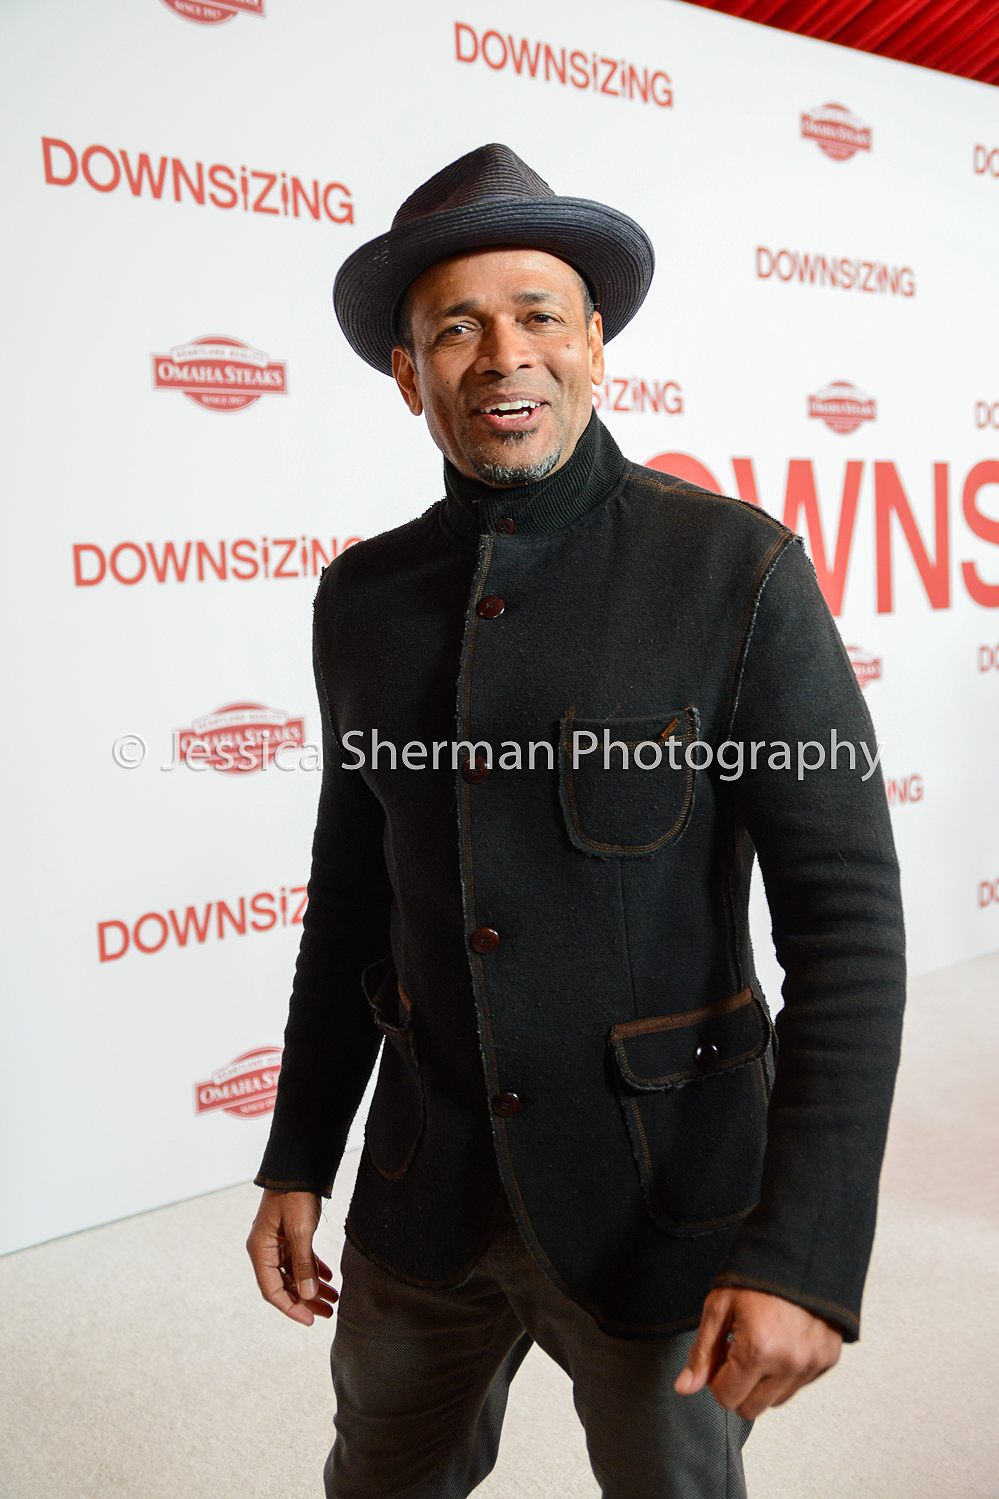 Mario-Van-Peebles_JessicaSherman (1 of 1).jpg